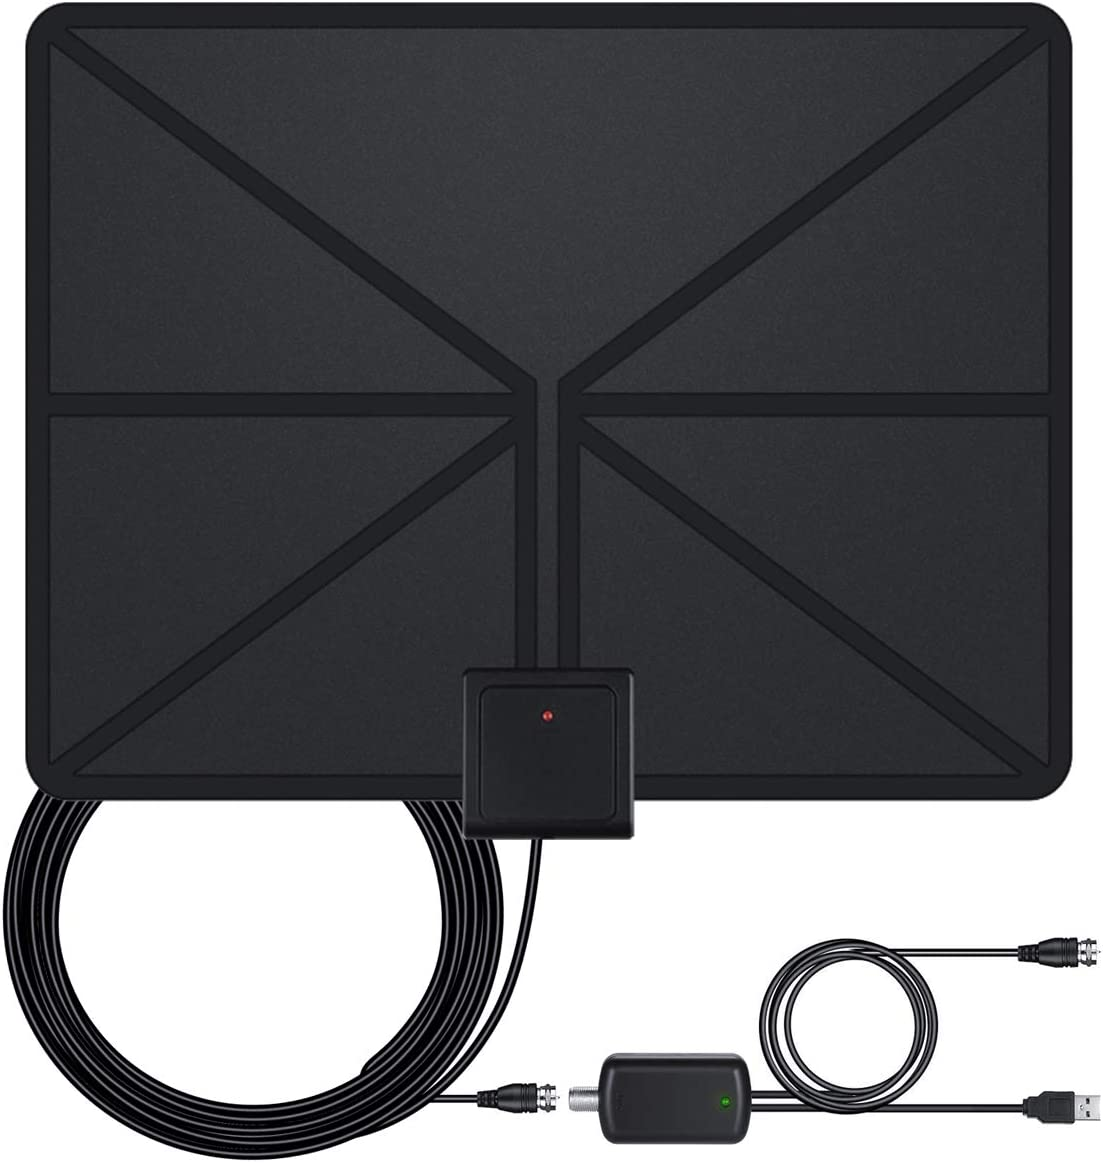 Indoor Amplified HD Digital TV Antenna up to 130 Miles Range Latest 2020 HDTV Antenna with Powerful Signal Booster,Support 4K 1080P UHF VHF Freeview HDTV Channels for All Indoor TVs